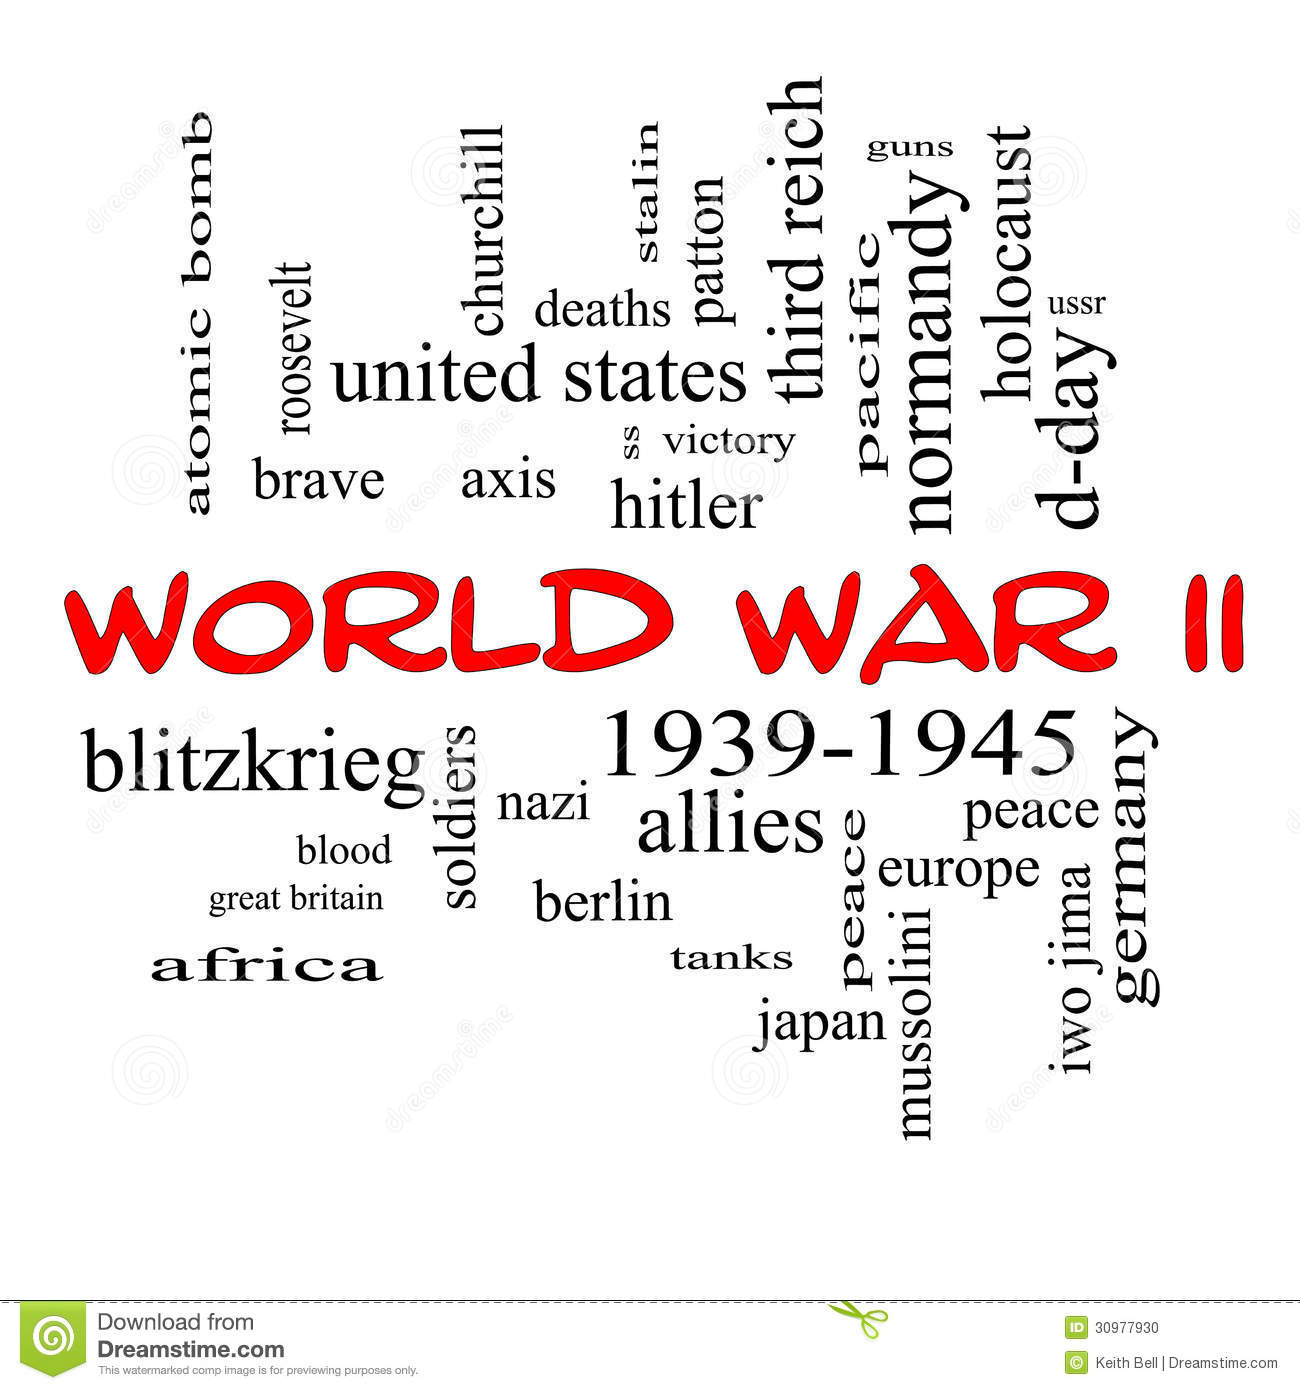 the victory of united states allies in world war ii The battle of kohima and imphal was the bloodiest of world war ii in india, and it cost japan much of its best army in burma  and representatives from the united states, australia, japan.